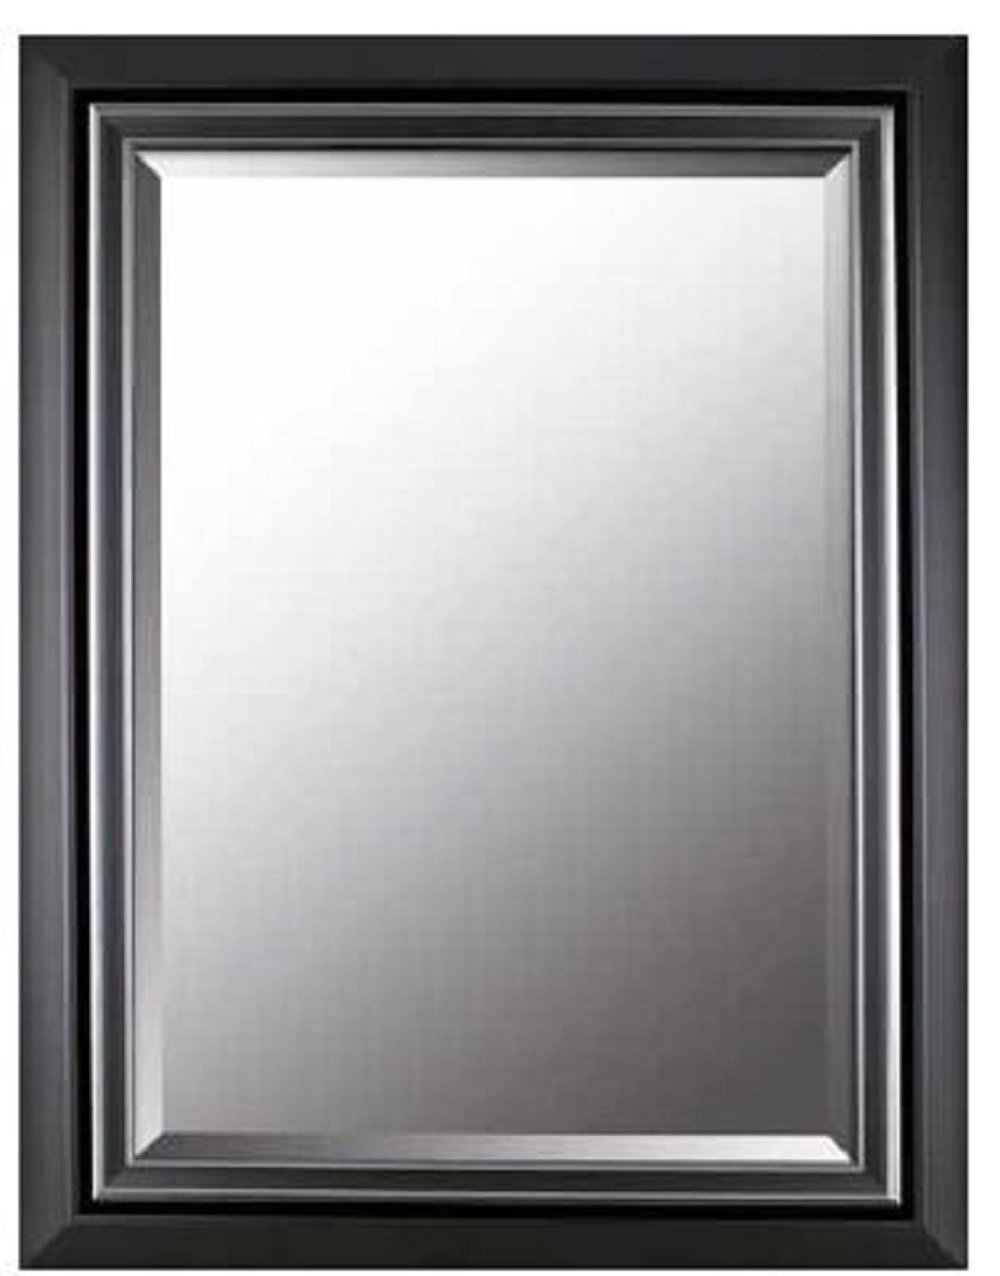 Rectangle Plastic Beveled Wall Mirrors Intended For Well Known Amazon: Mirrorize Canada Gray Silver Plastic Bevelled Industrial (View 11 of 20)